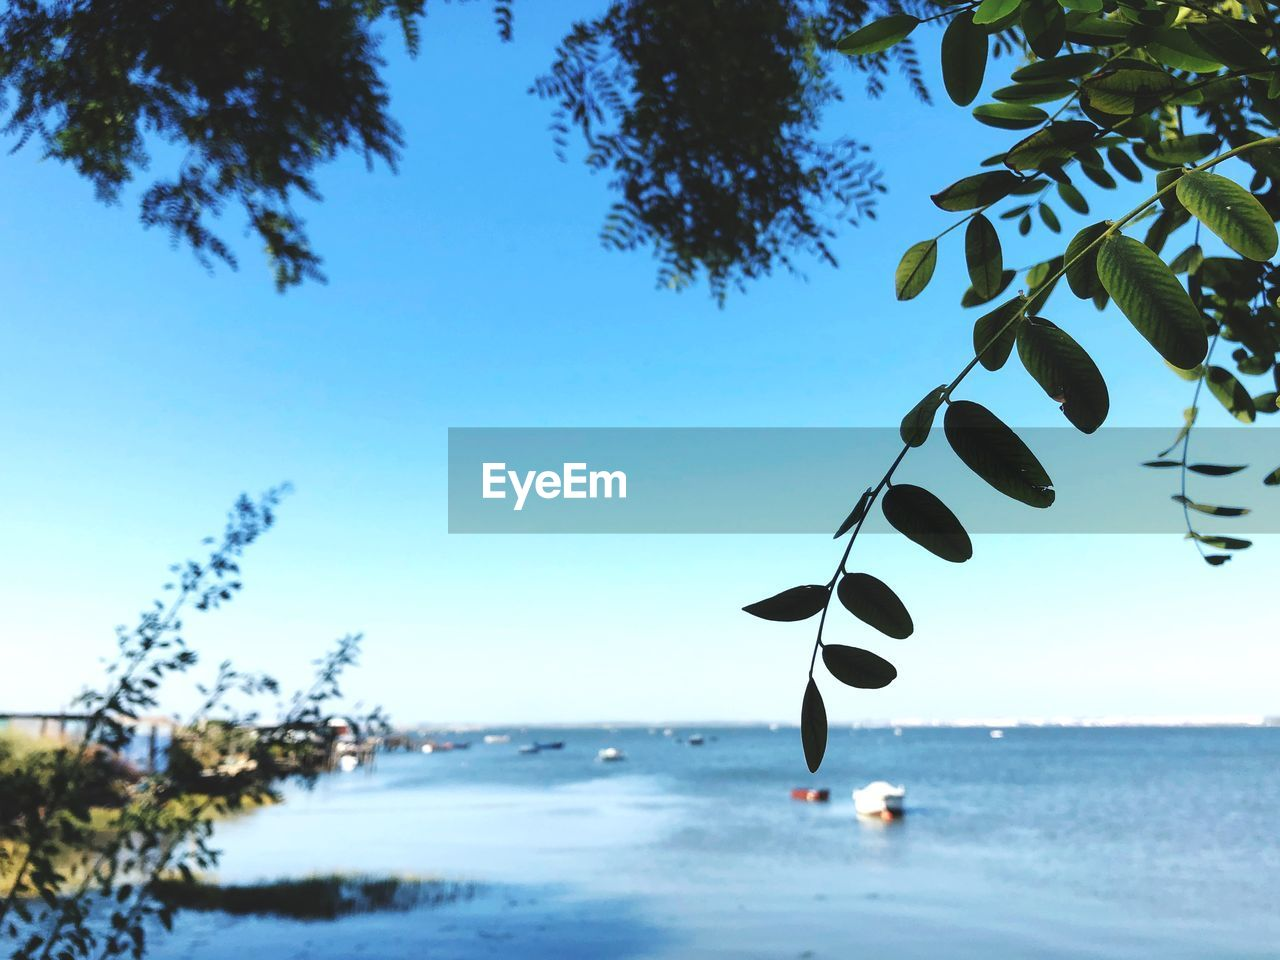 sky, tree, plant, water, nature, beauty in nature, blue, day, clear sky, land, sea, tranquility, no people, growth, scenics - nature, beach, tranquil scene, outdoors, focus on foreground